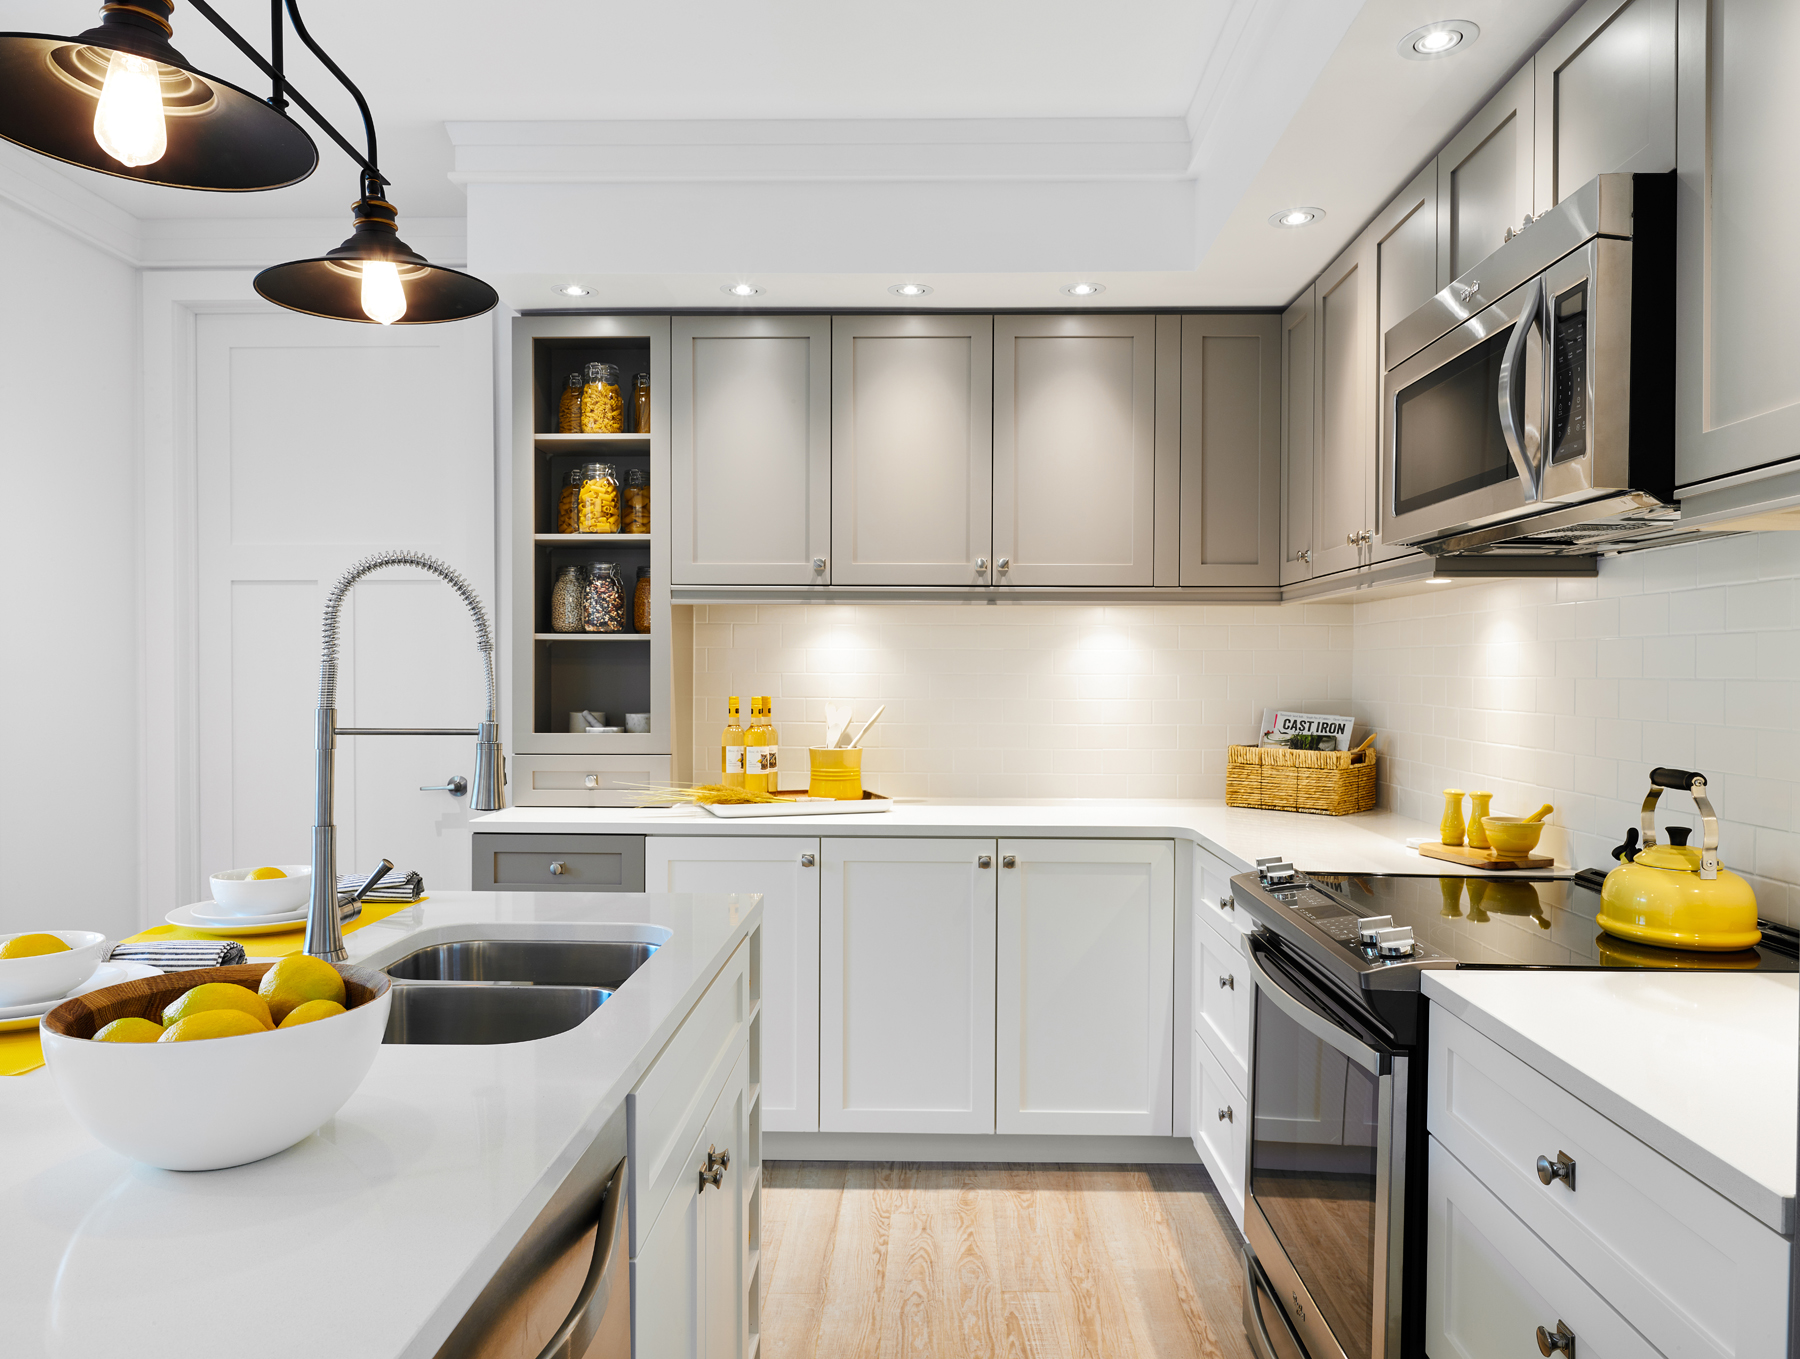 Seasons on Little Lake white and light grey kitchen with lemons, yellow tea kettle, and other yellow accessories